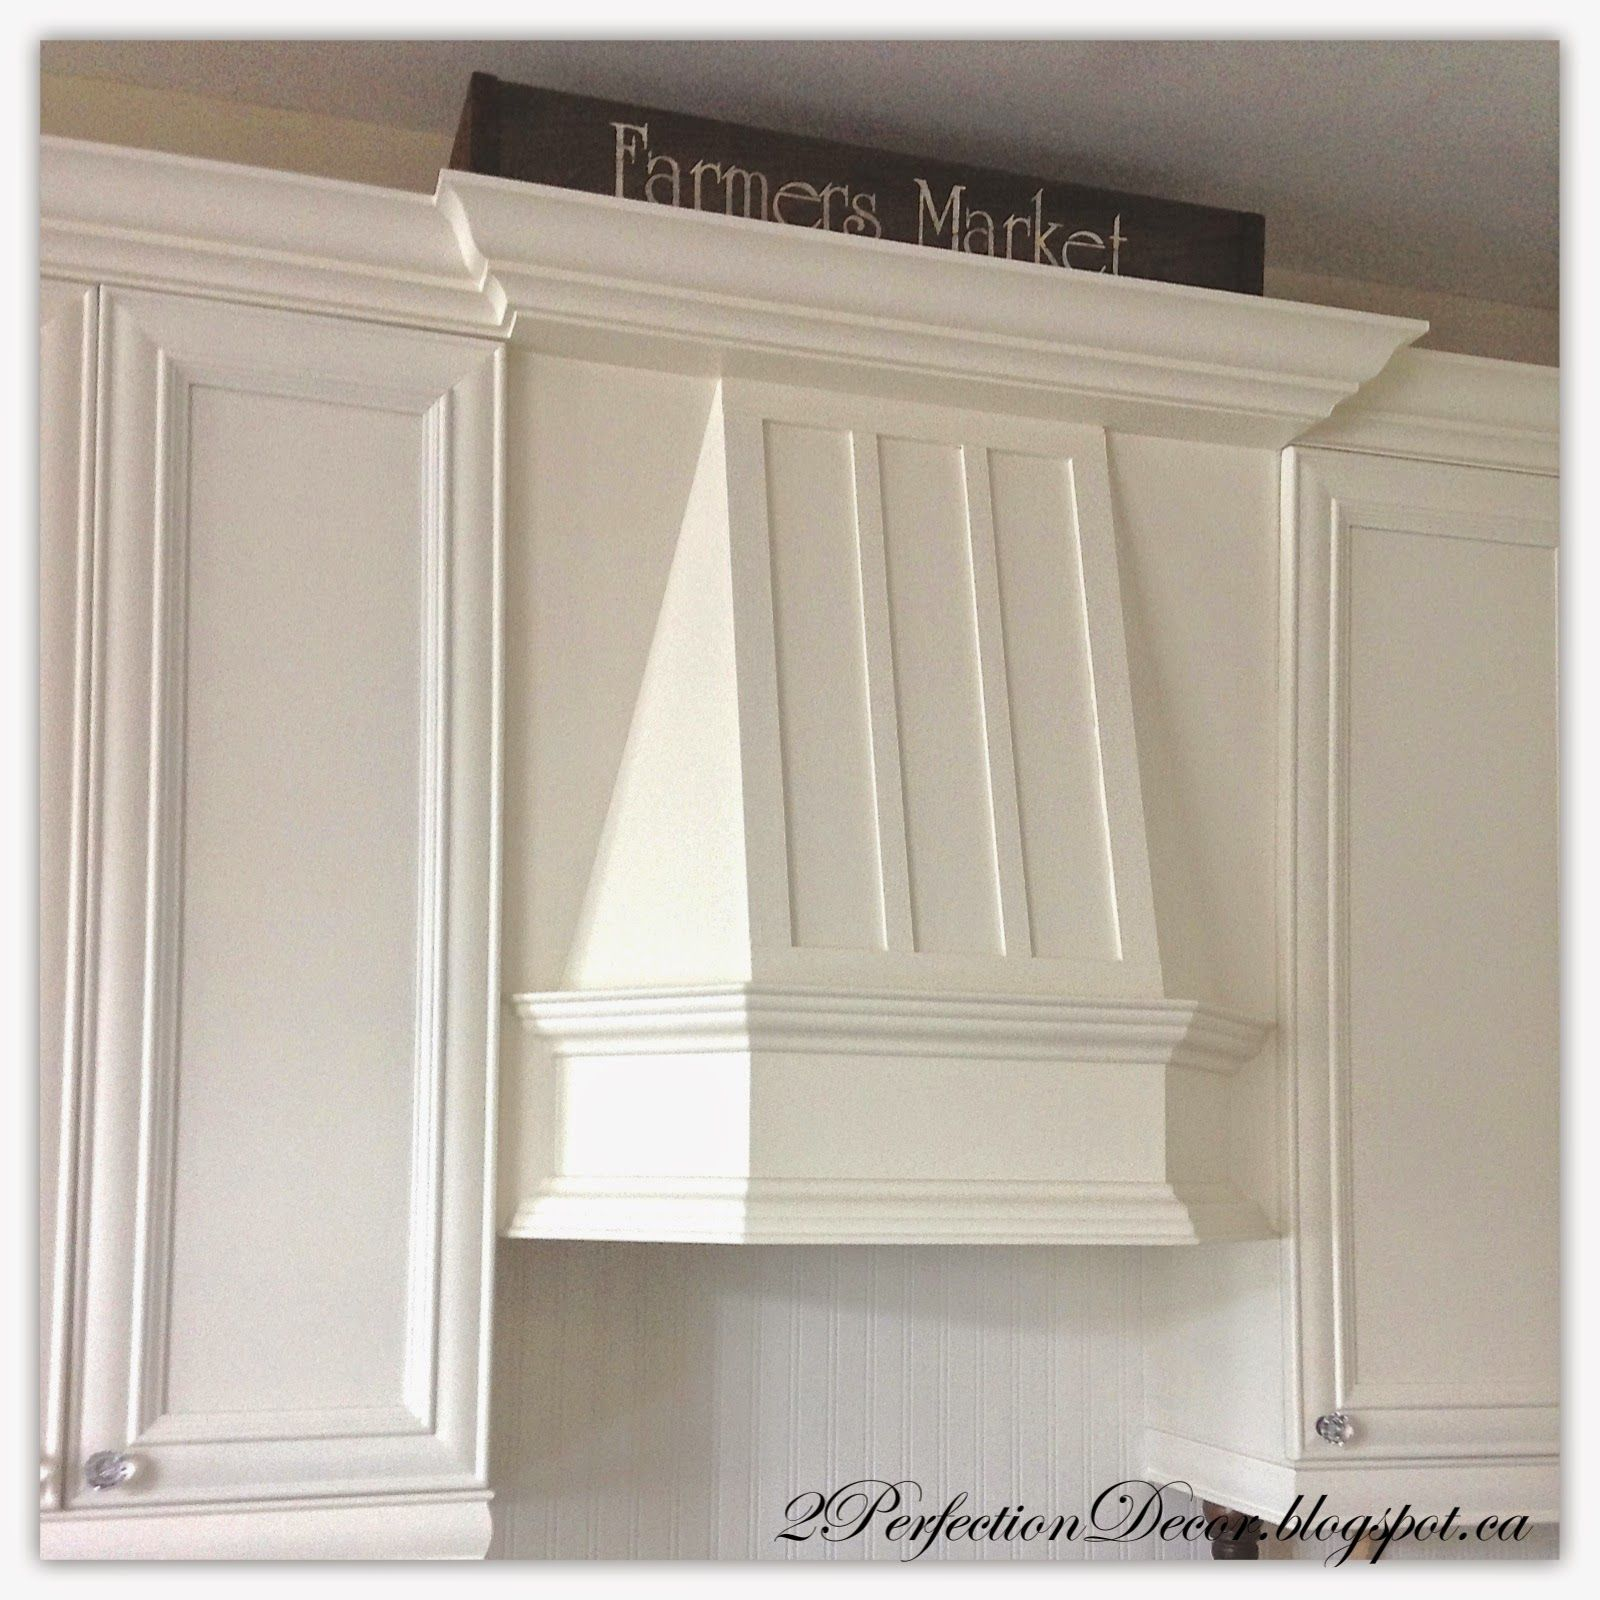 Diy Painted French Country Kitchen Cabinet Ideas on diy country banner, diy country home decor, diy country paint, diy country kitchen designs,